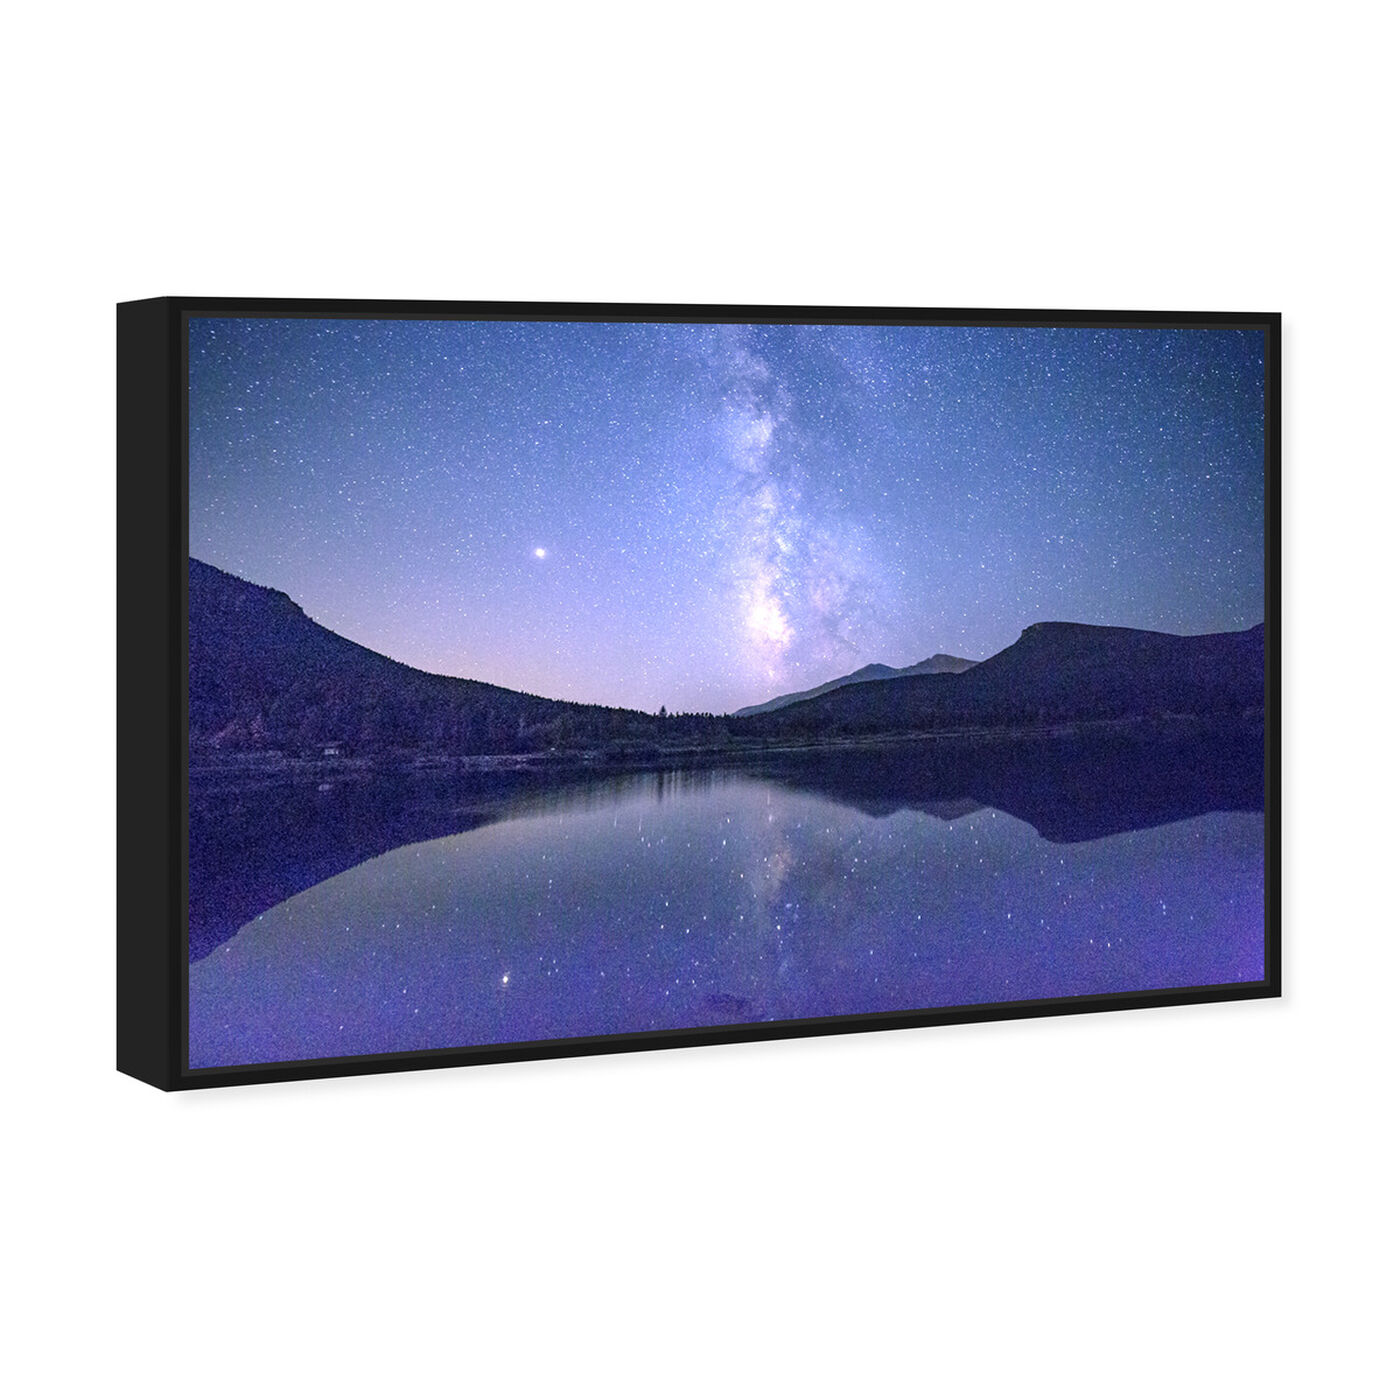 Angled view of Curro Cardenal - Starry Night featuring nature and landscape and mountains art.